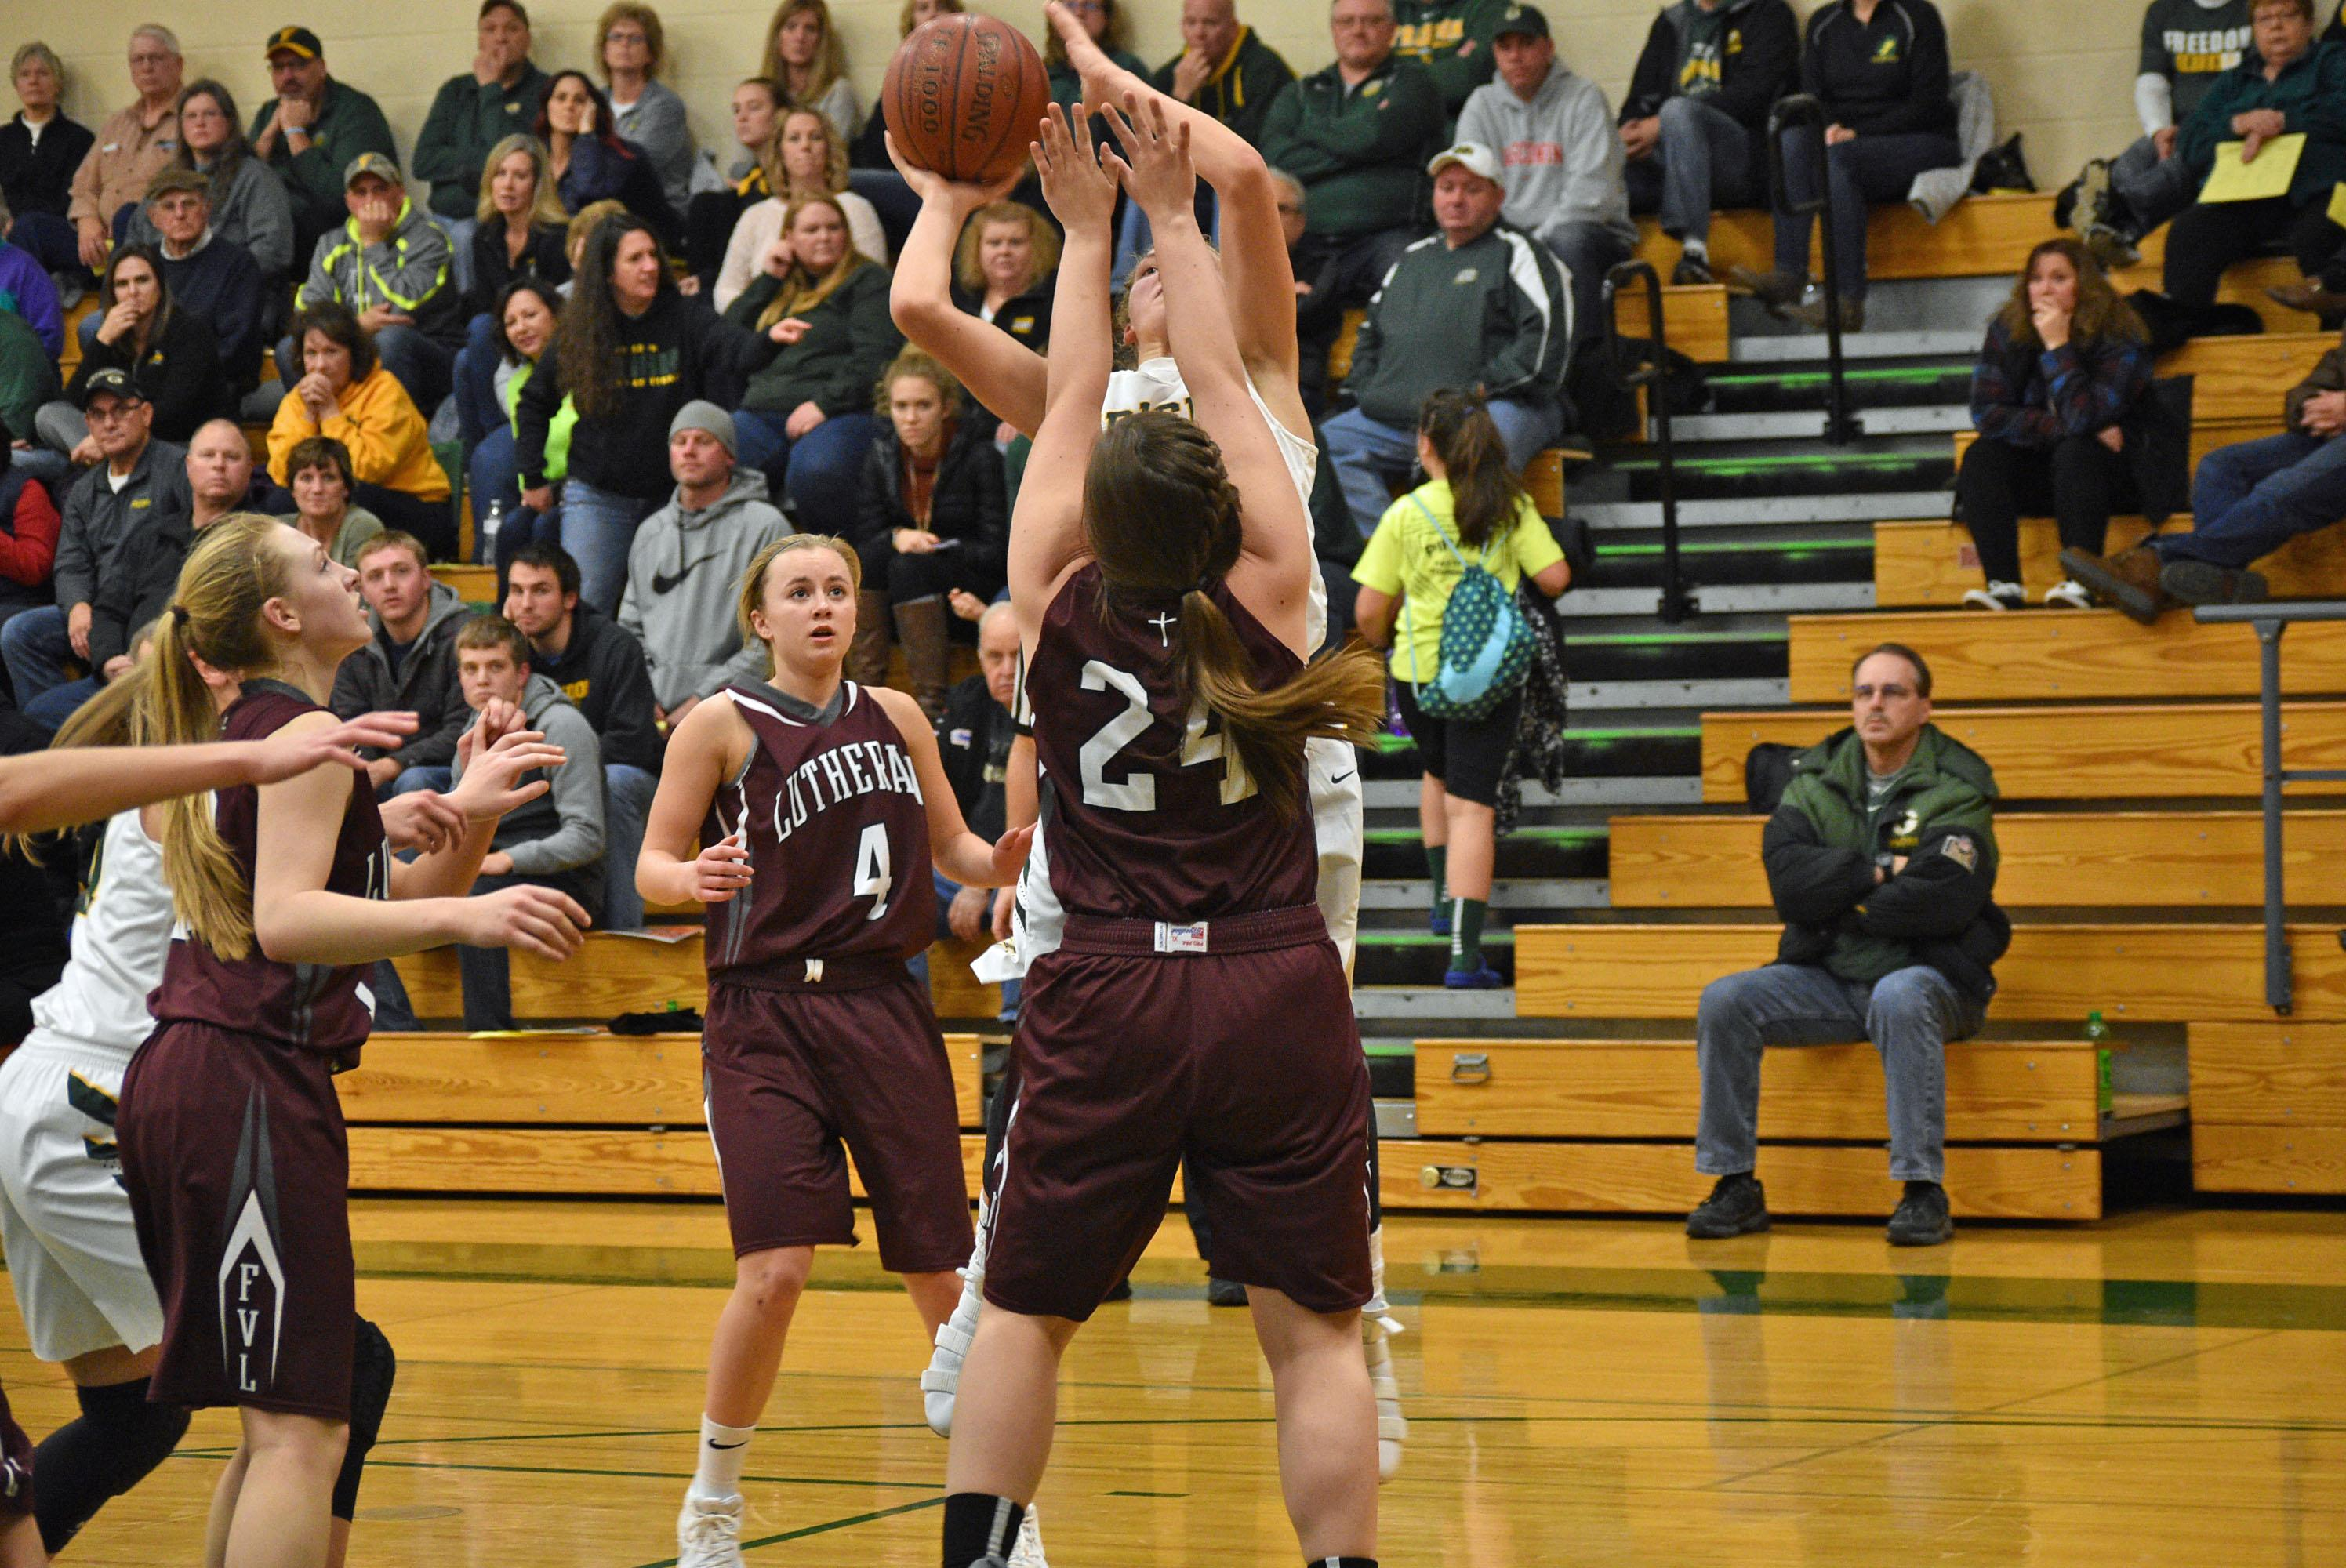 Fox Valley Lutheran beat Freedom, 57-50, in double overtime in a North Eastern Conference girls basketball game on Tuesday night. (Doug Ritchay/WLUK)